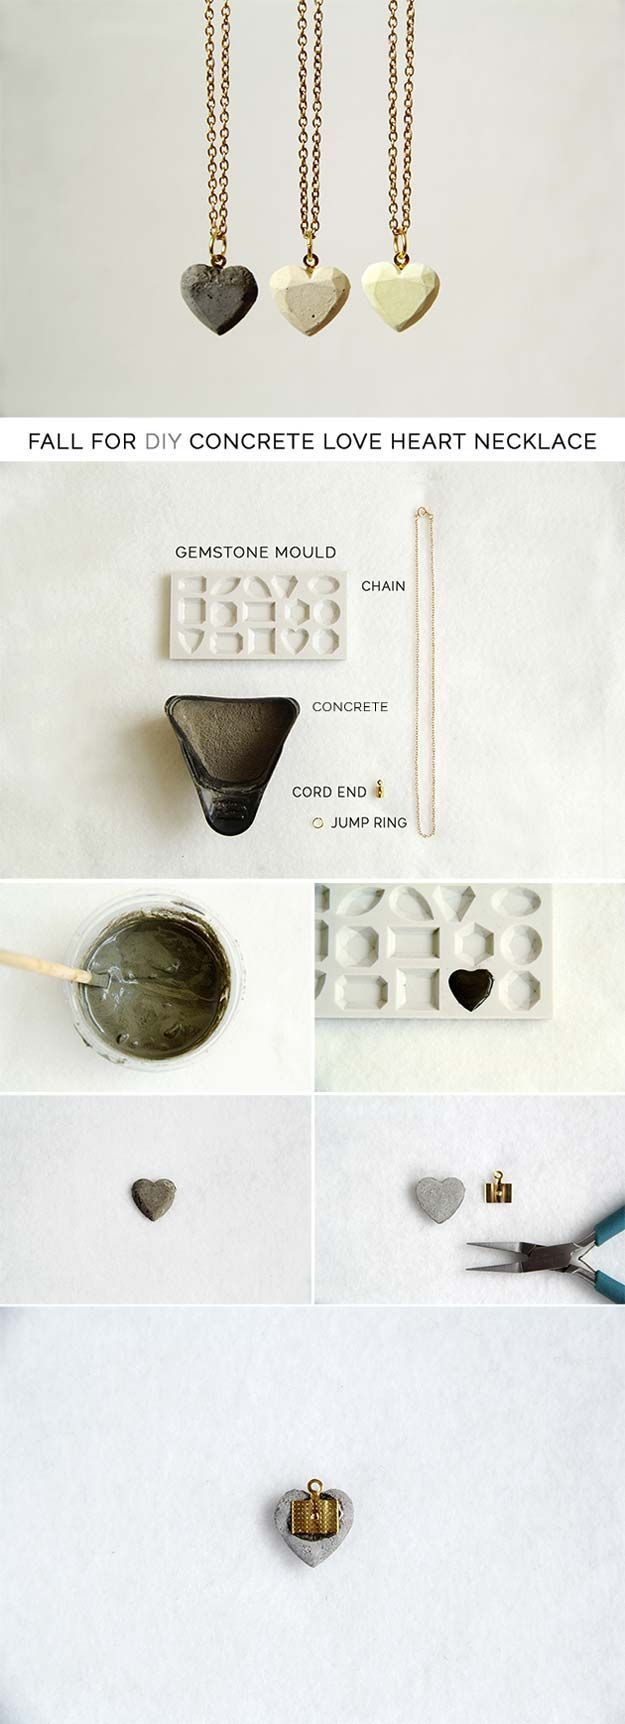 Best DIY Ideas from Tumblr - DIY Concrete Love Heart Necklace - Crafts and DIY Projects Inspired by Tumblr are Perfect Room Decor for Teens and Adults - Fun Crafts and Easy DIY Gifts, Clothes and Bedroom Project Tutorials for Teenagers and Tweens http://diyprojectsforteens.com/diy-projects-tumblr